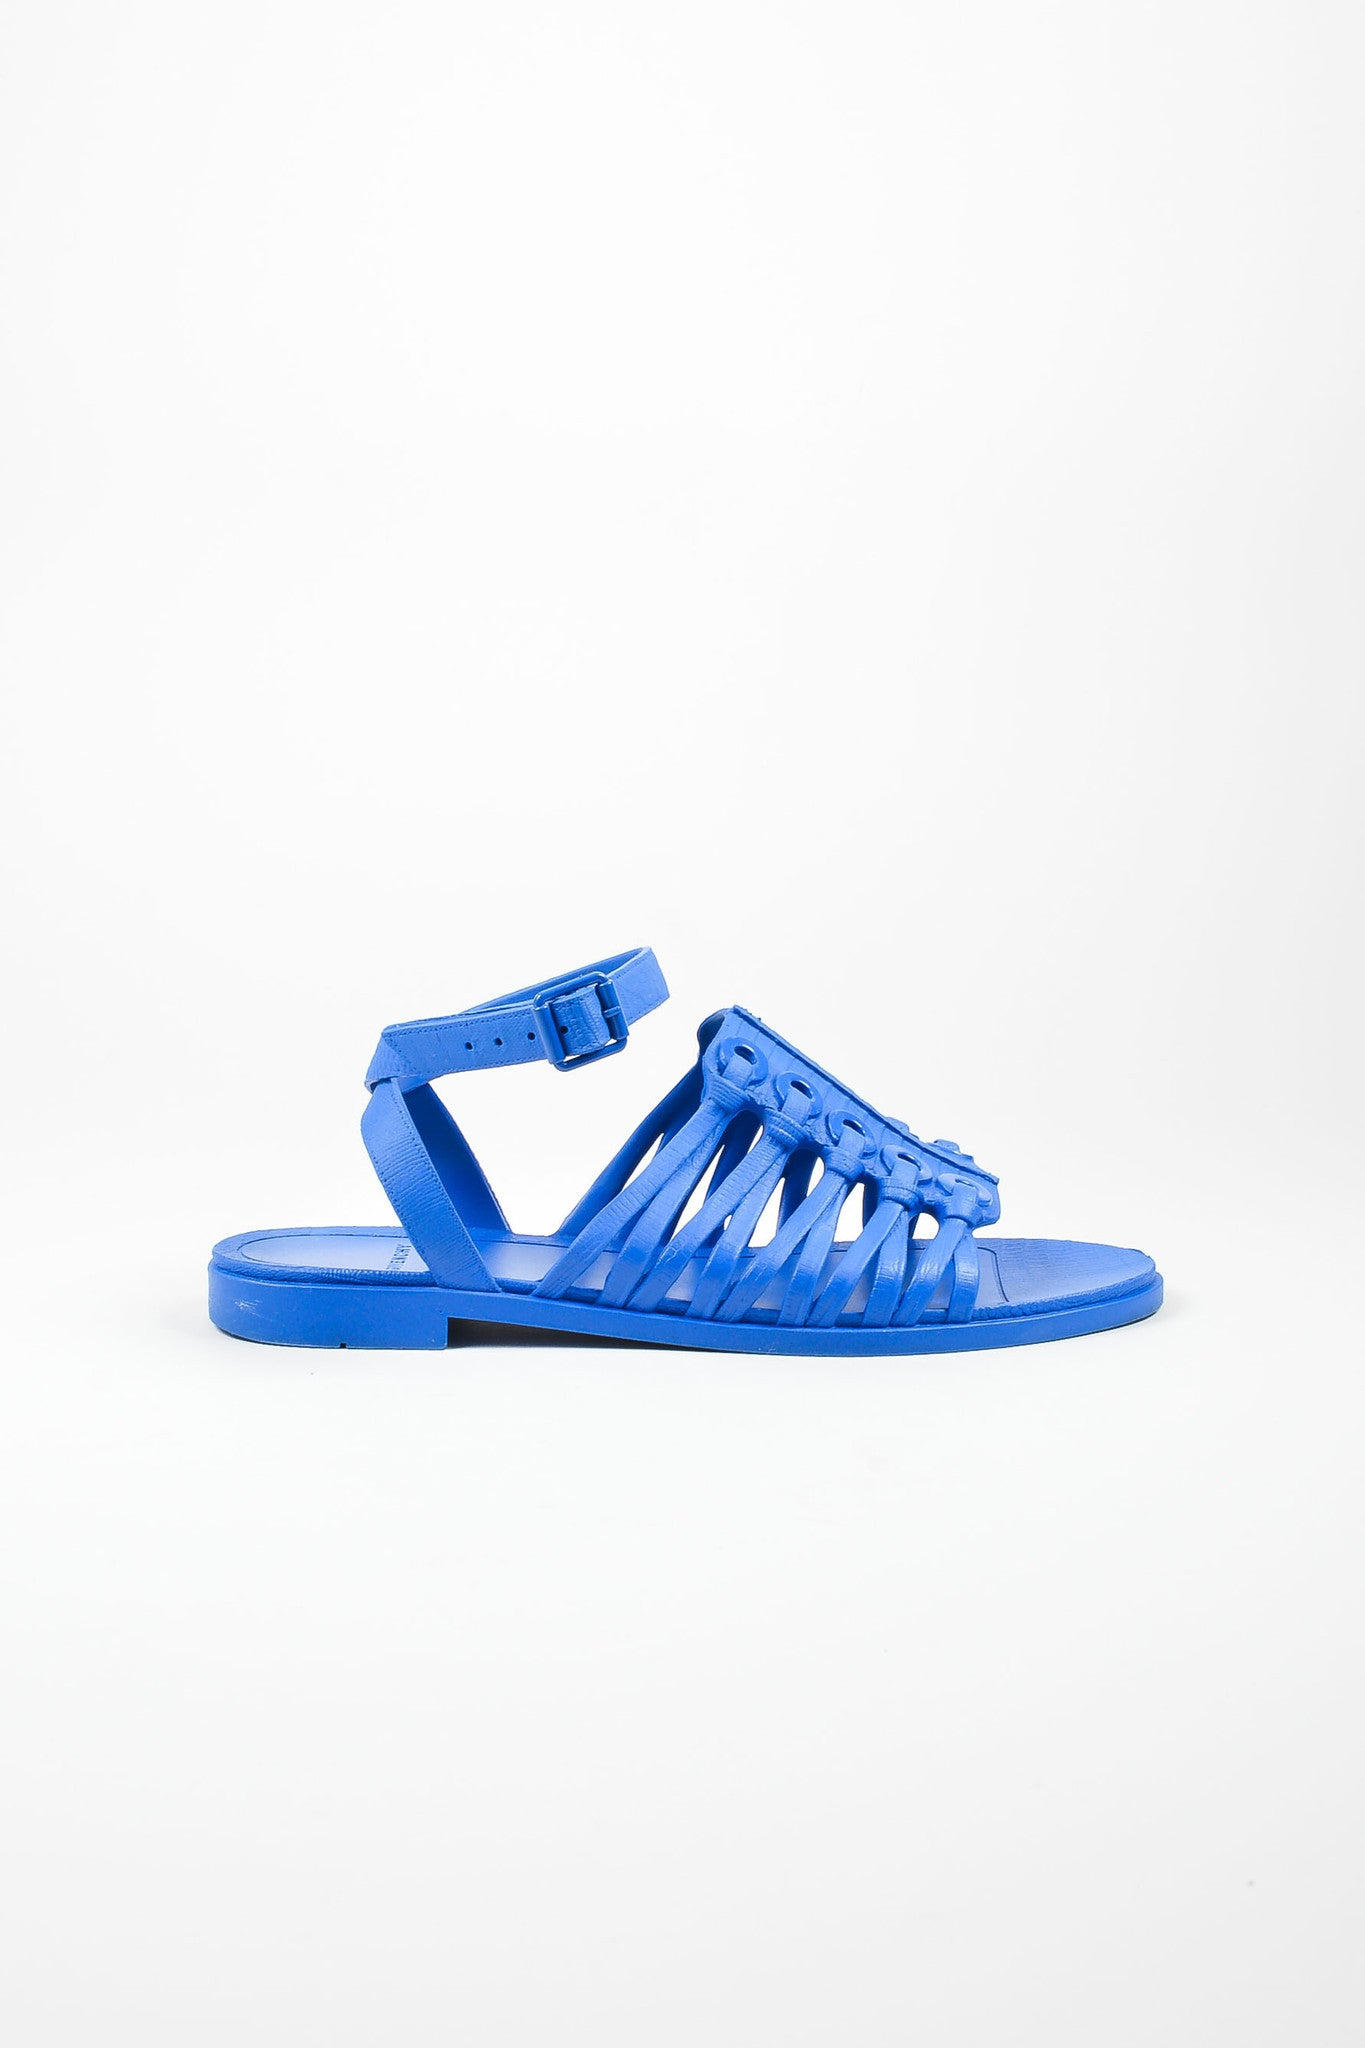 Blue Plastic Knot Molded Grommet Gladiator Ankle Wrap Sandals